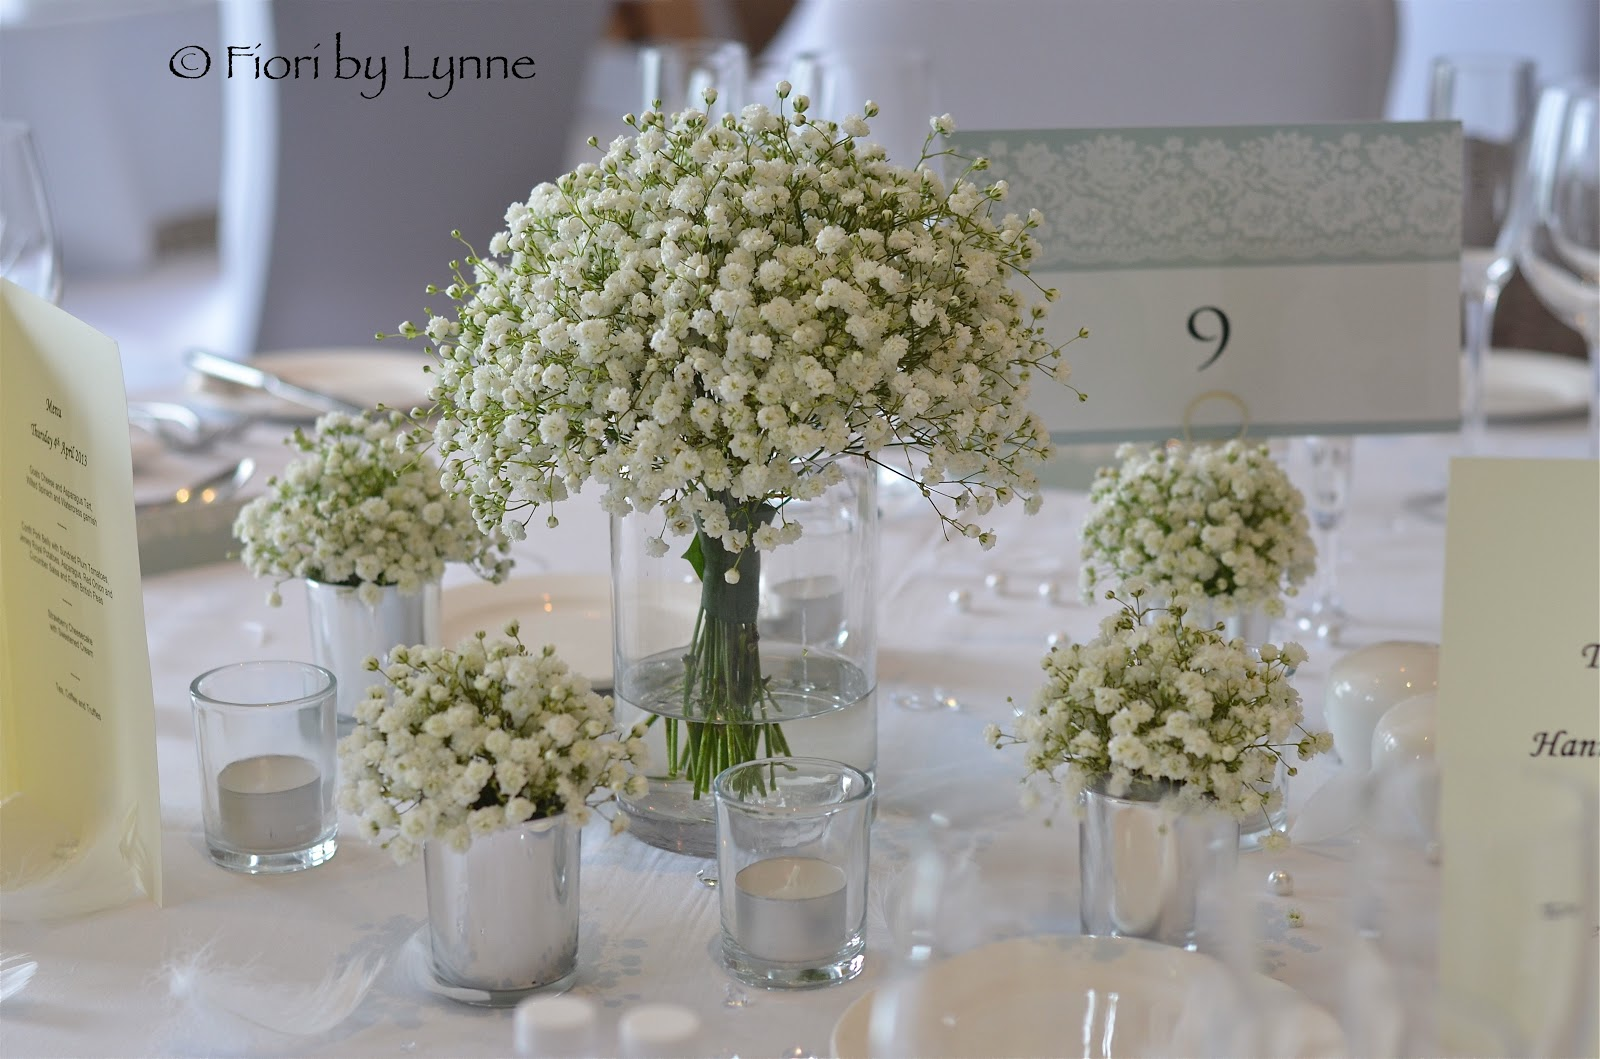 Wedding flowers blog hannah 39 s vintage wedding flowers - Vase plat centre de table ...